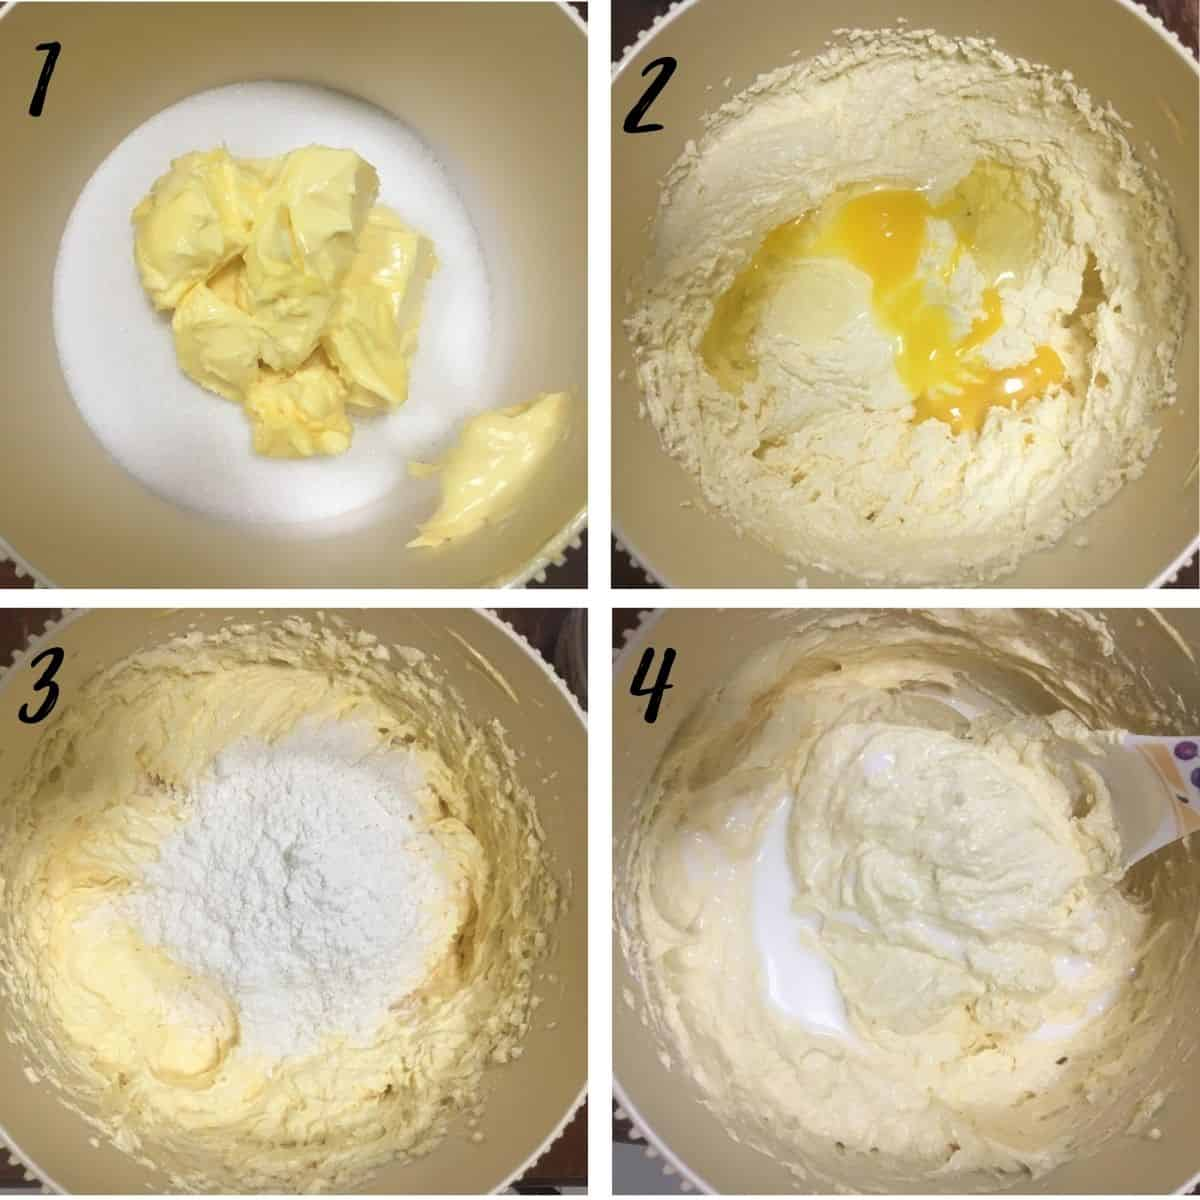 Poster of 4 images showing how to mix a cake batter